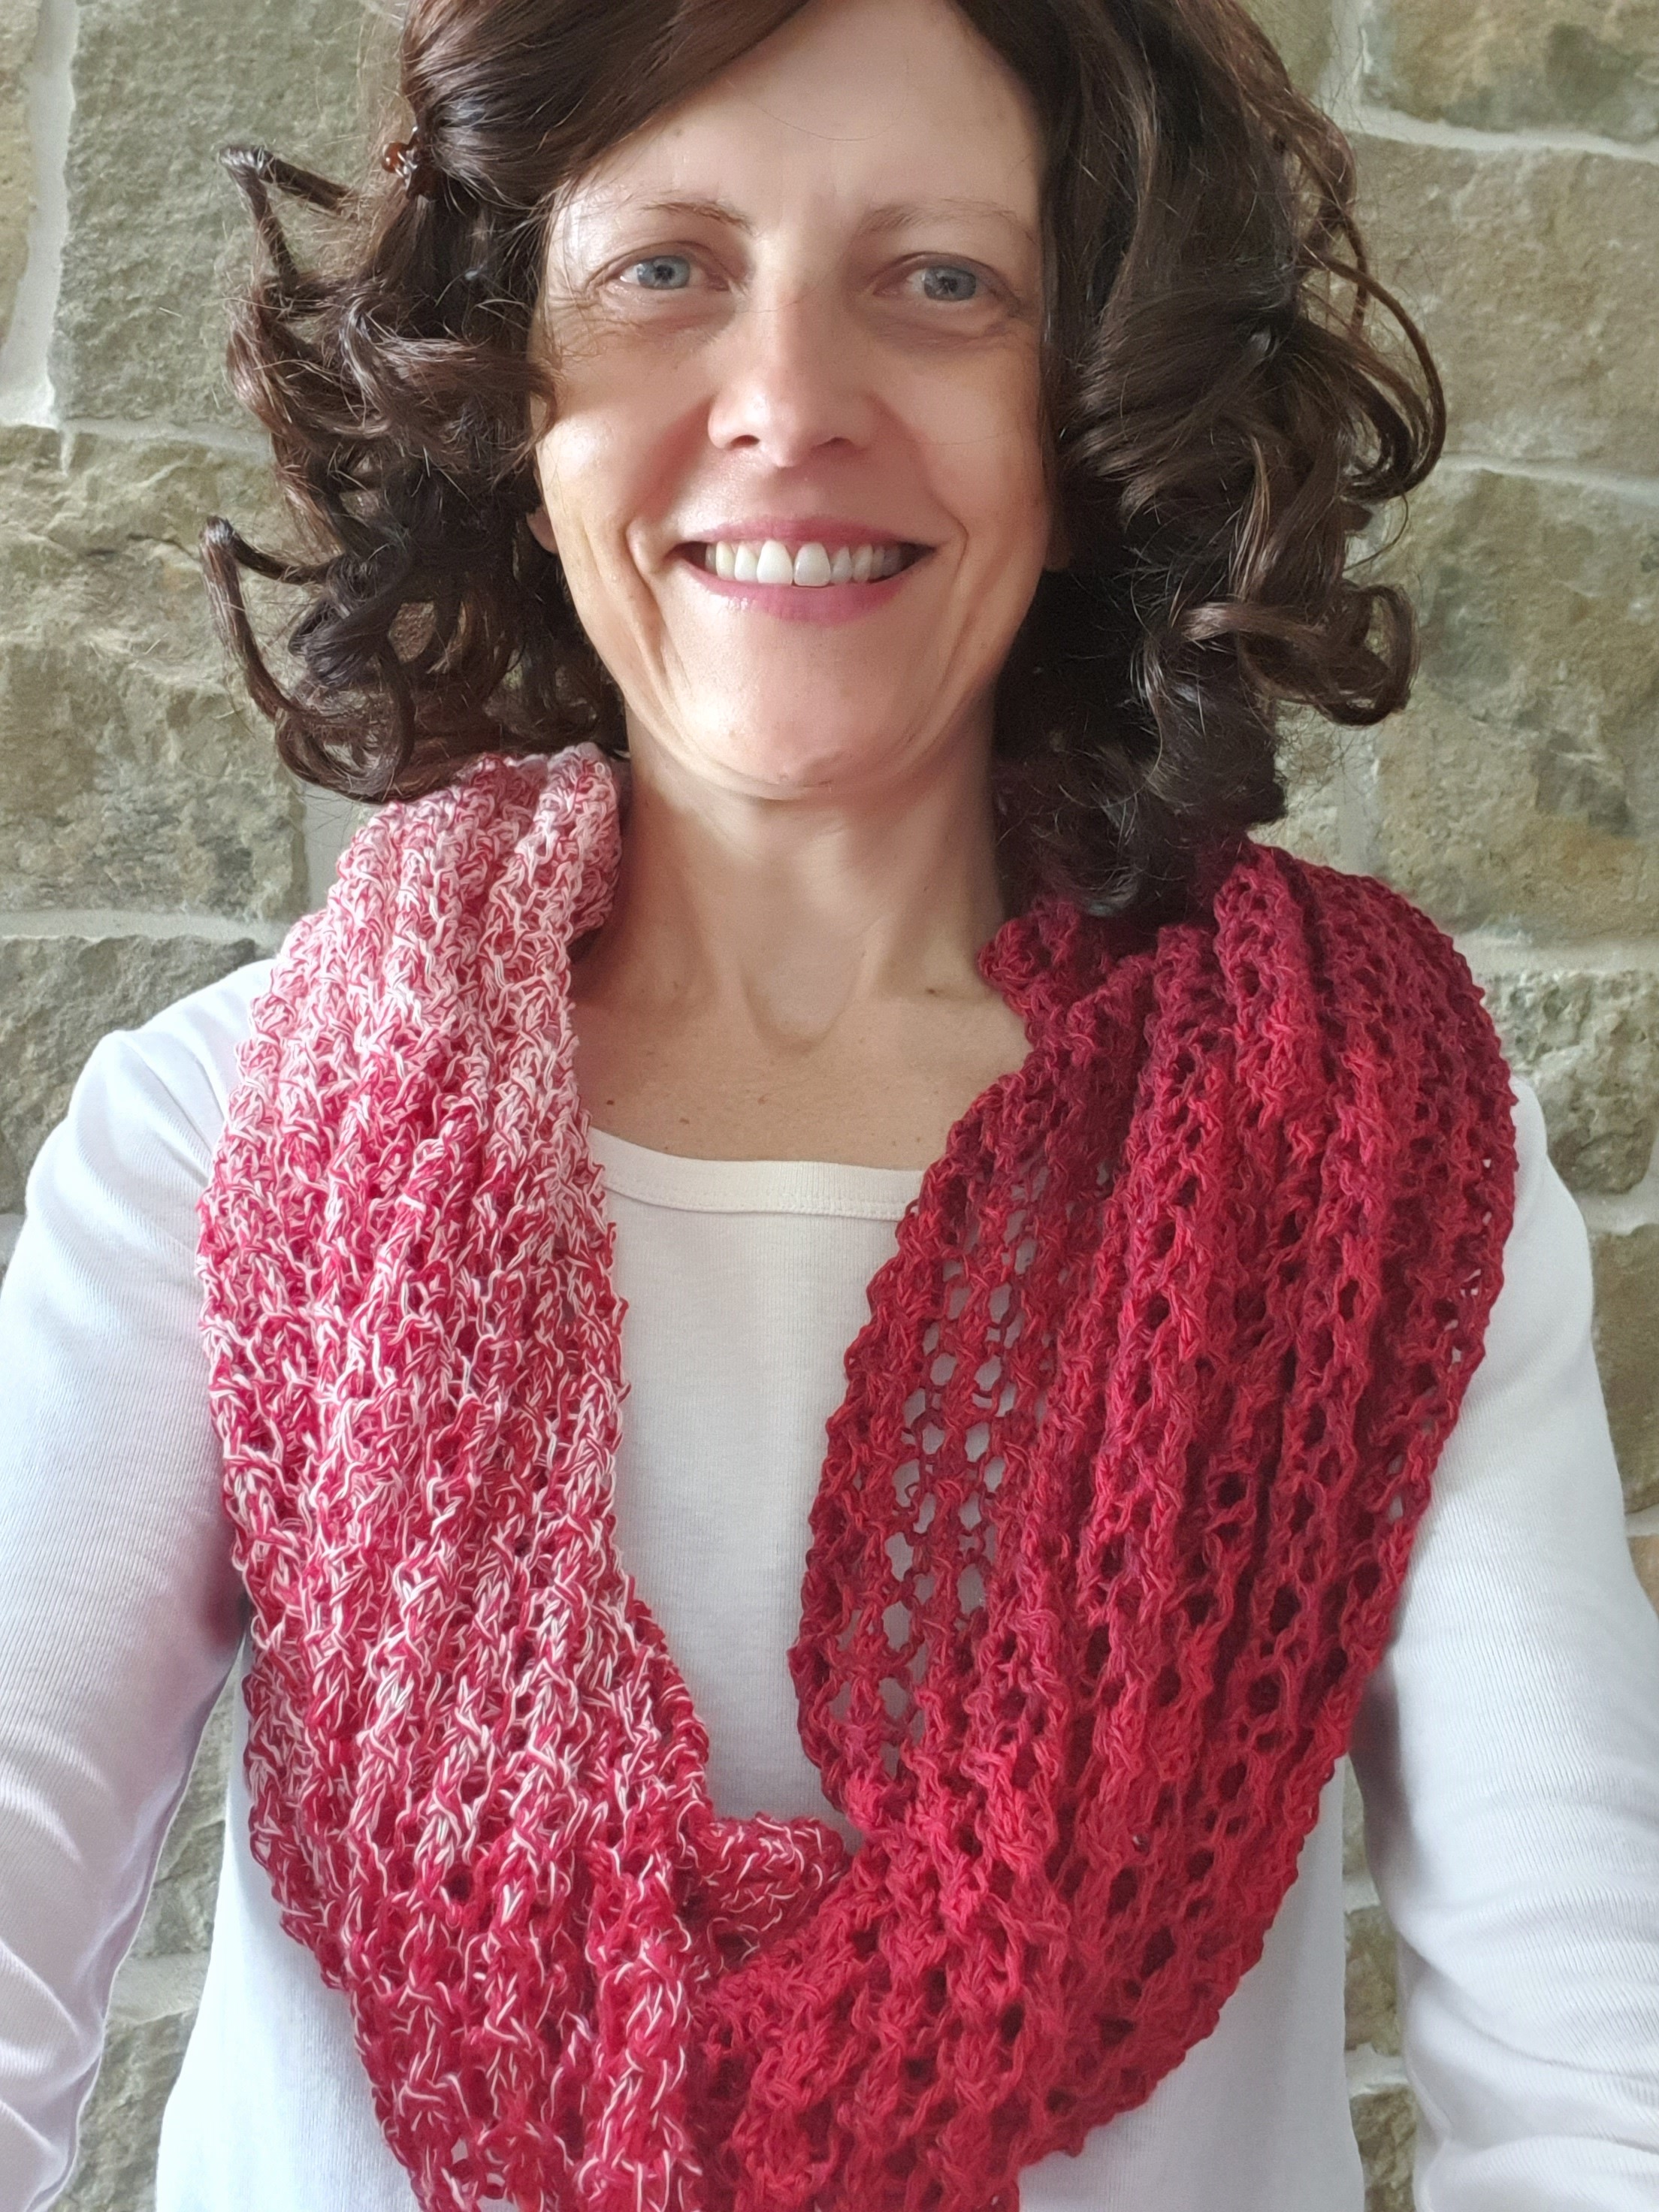 Knitting Patterns Online - Scarf And Cowl Knitting ...